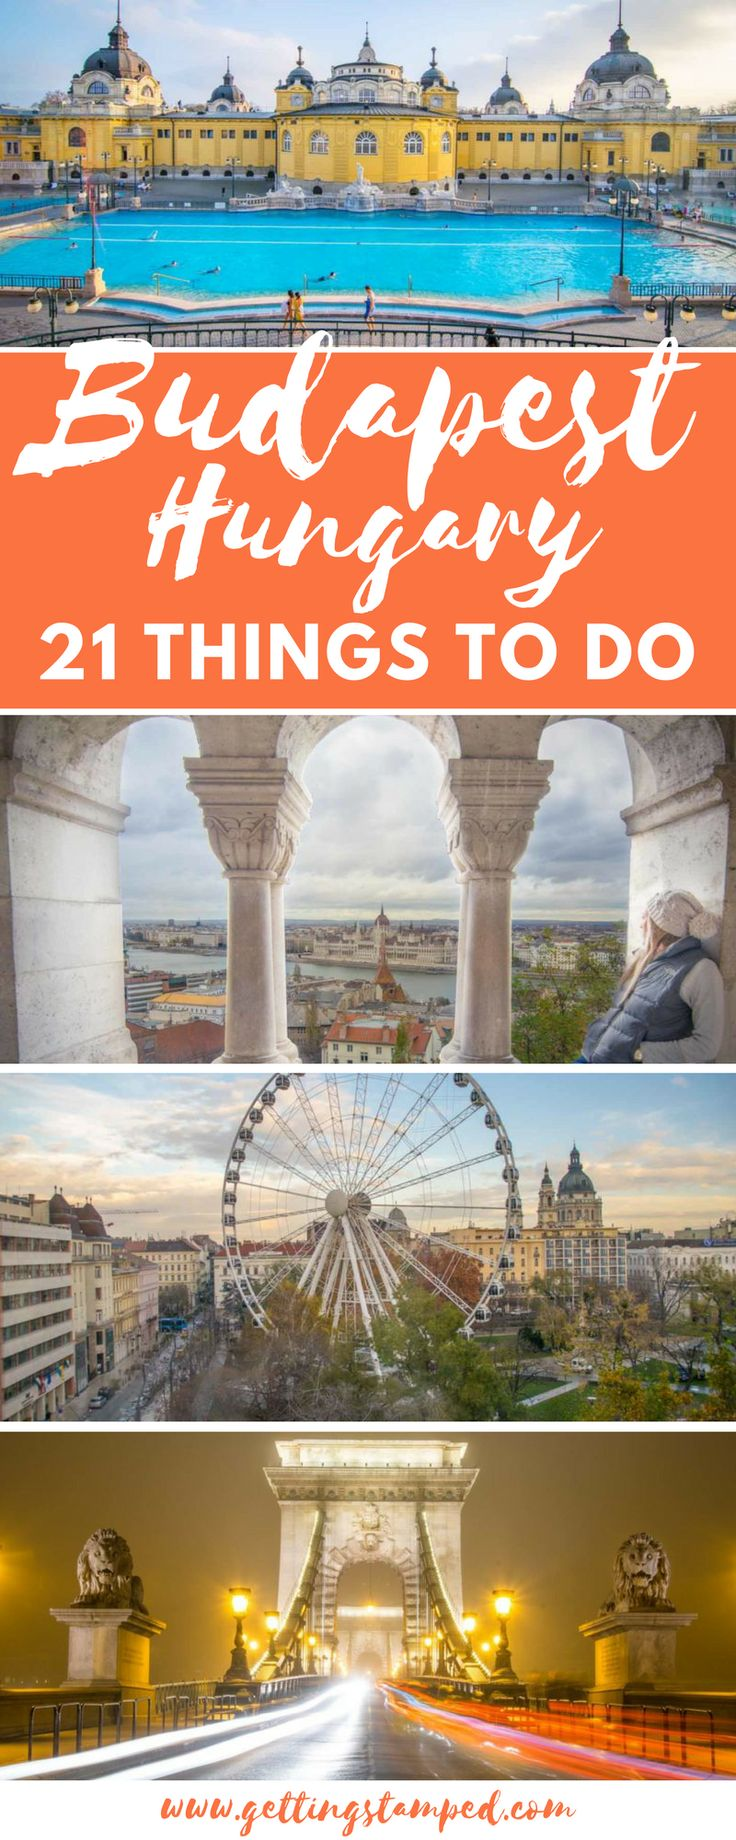 Traveling to #Europe? Don't overlook #Budapest! Budapest is the whole package: beautiful, safe, tons of things to do, tasty food, good beer, and budget friendly! || Getting Stamped - Couple #Travel & #Photography #Blog